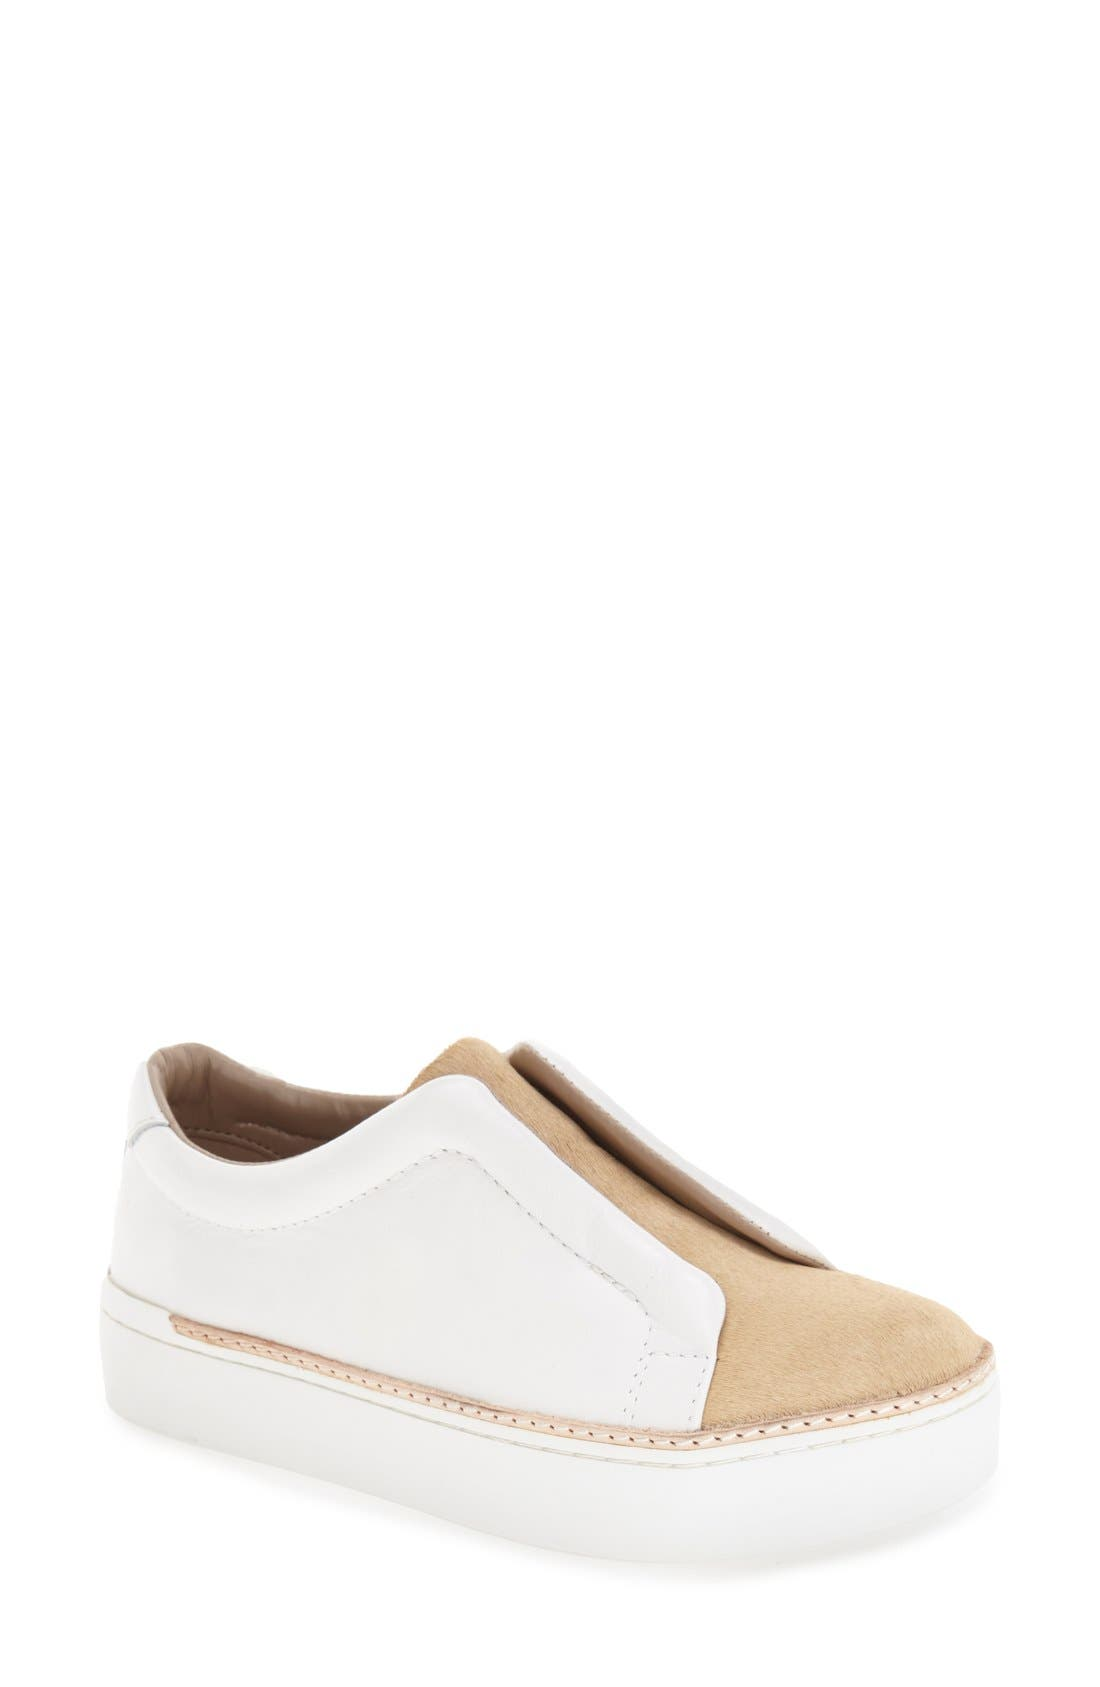 M4D3 FOOTWEAR M4D3 Super Slip-On Sneaker